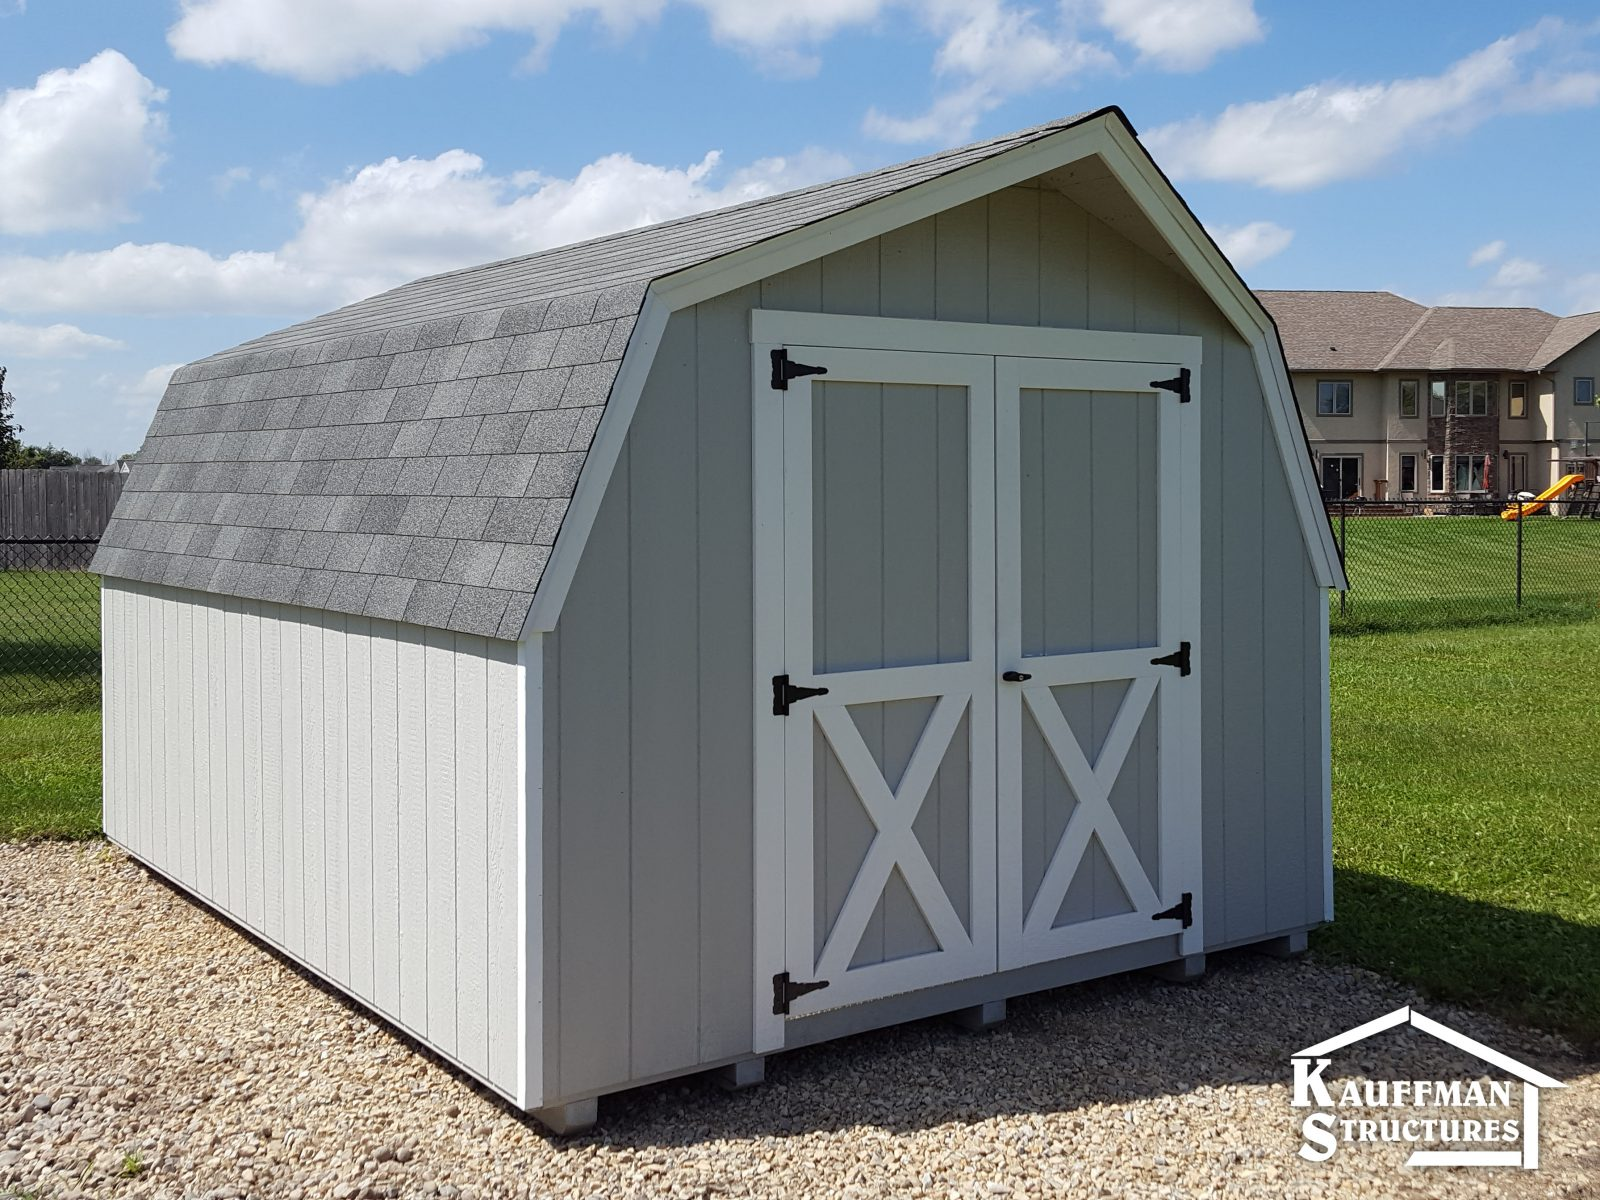 high barn sheds for sale in bethany, mo